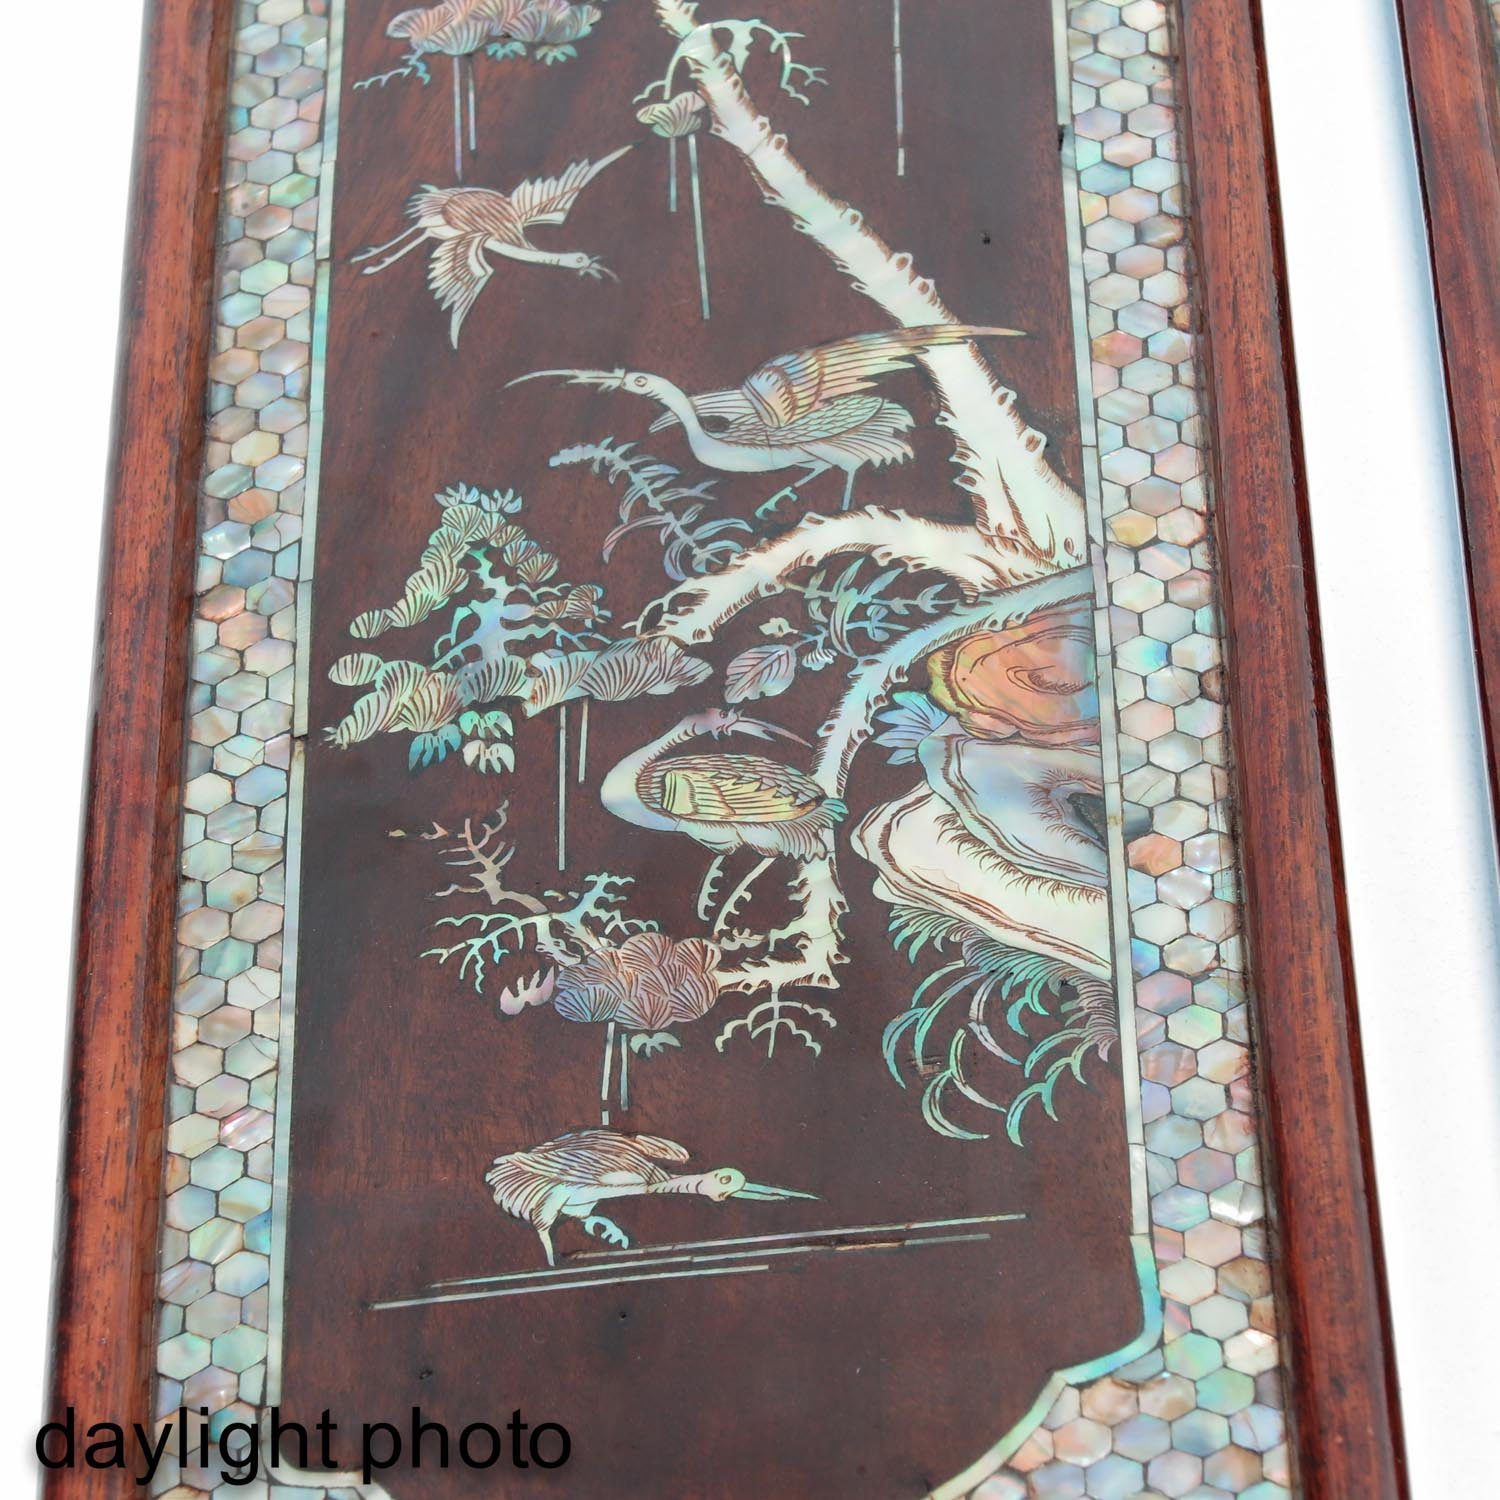 Lot 7018 - A Series of 4 Wall Panels